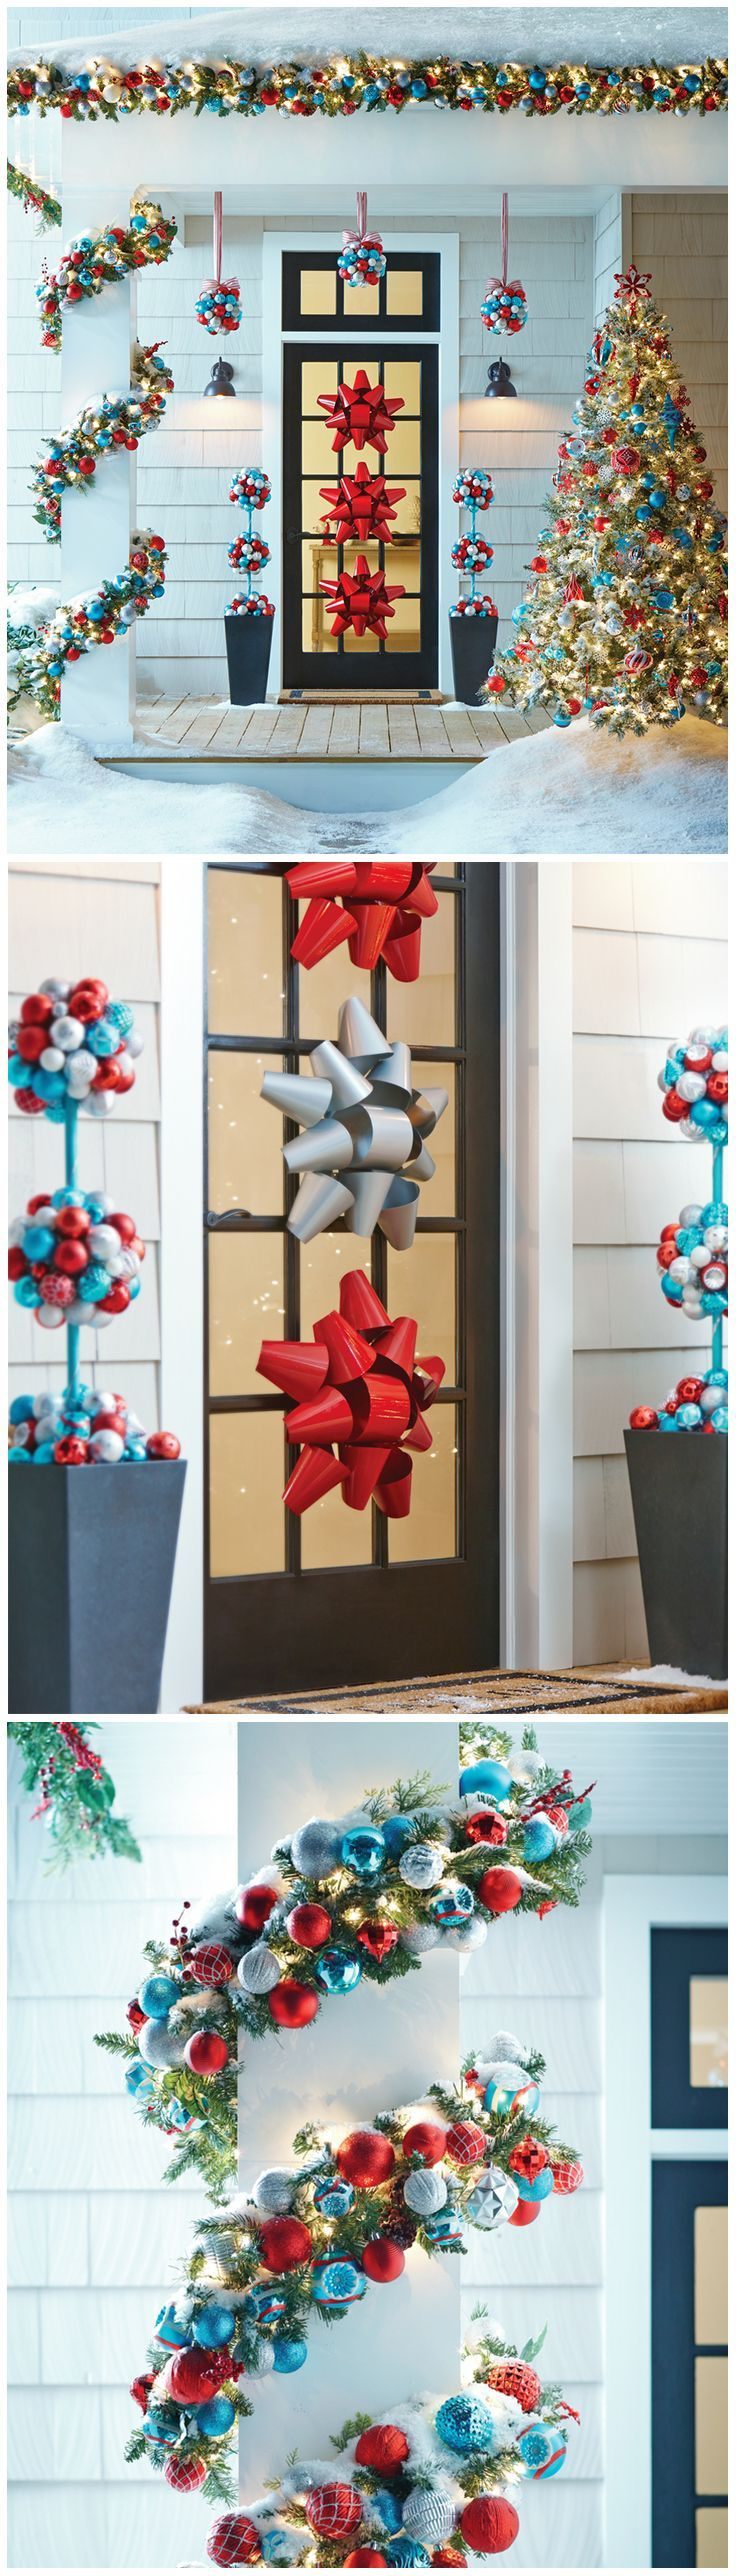 Christmas diy decorations outdoor - Best 25 Diy Outdoor Christmas Decorations Ideas On Pinterest Outdoor Christmas Decorations Outdoor Xmas Decorations And Ornaments For The Home